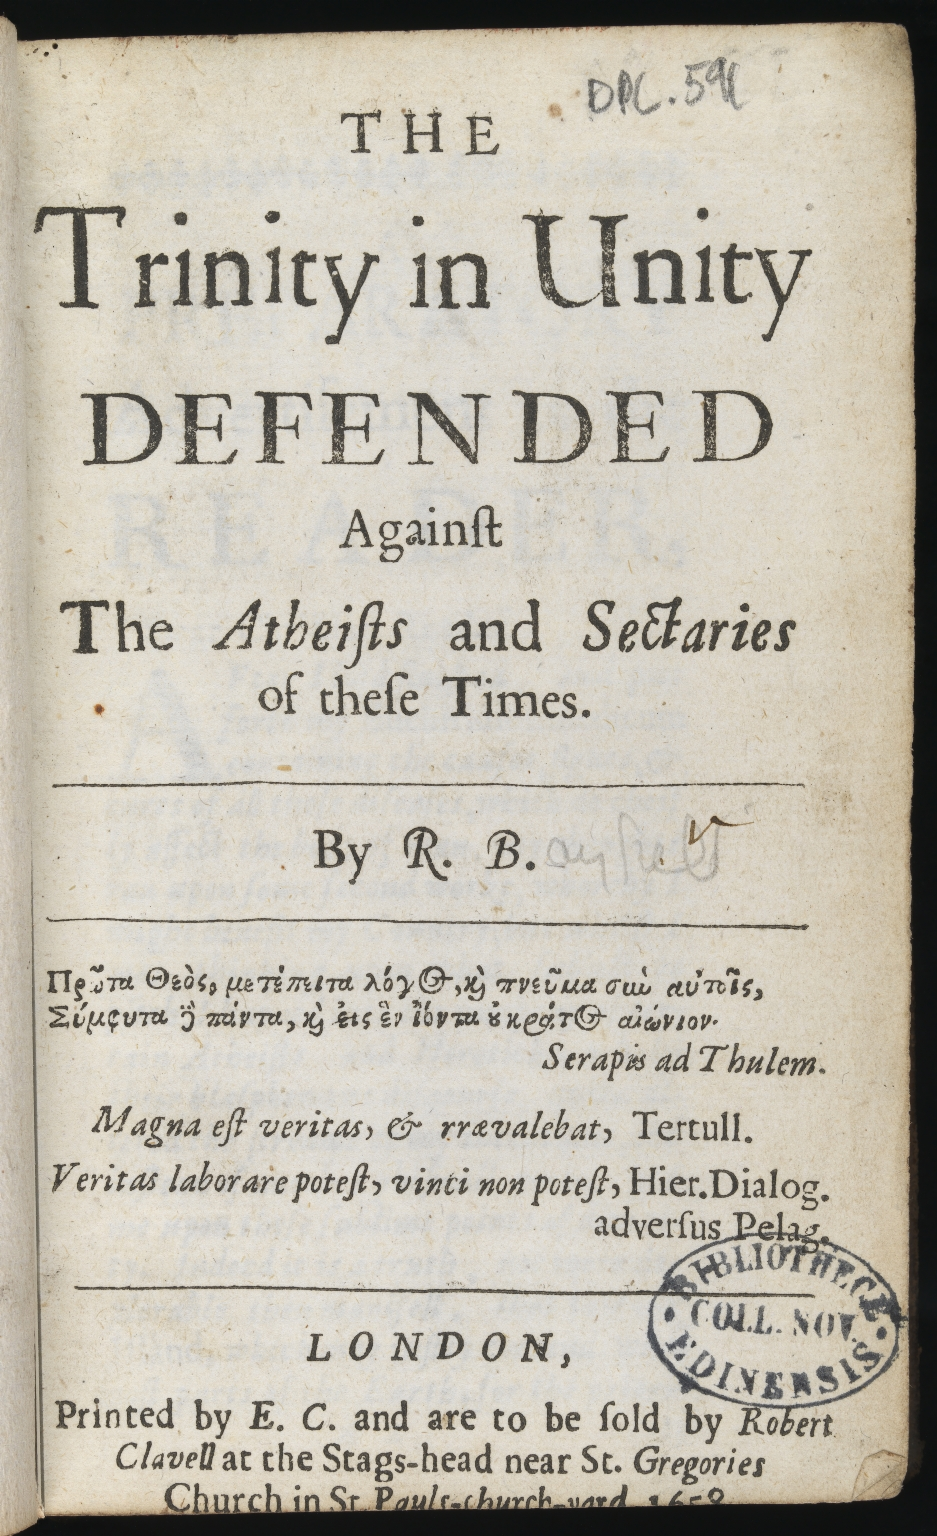 The Trinity in unity defended against the atheists and sectaries, Title page